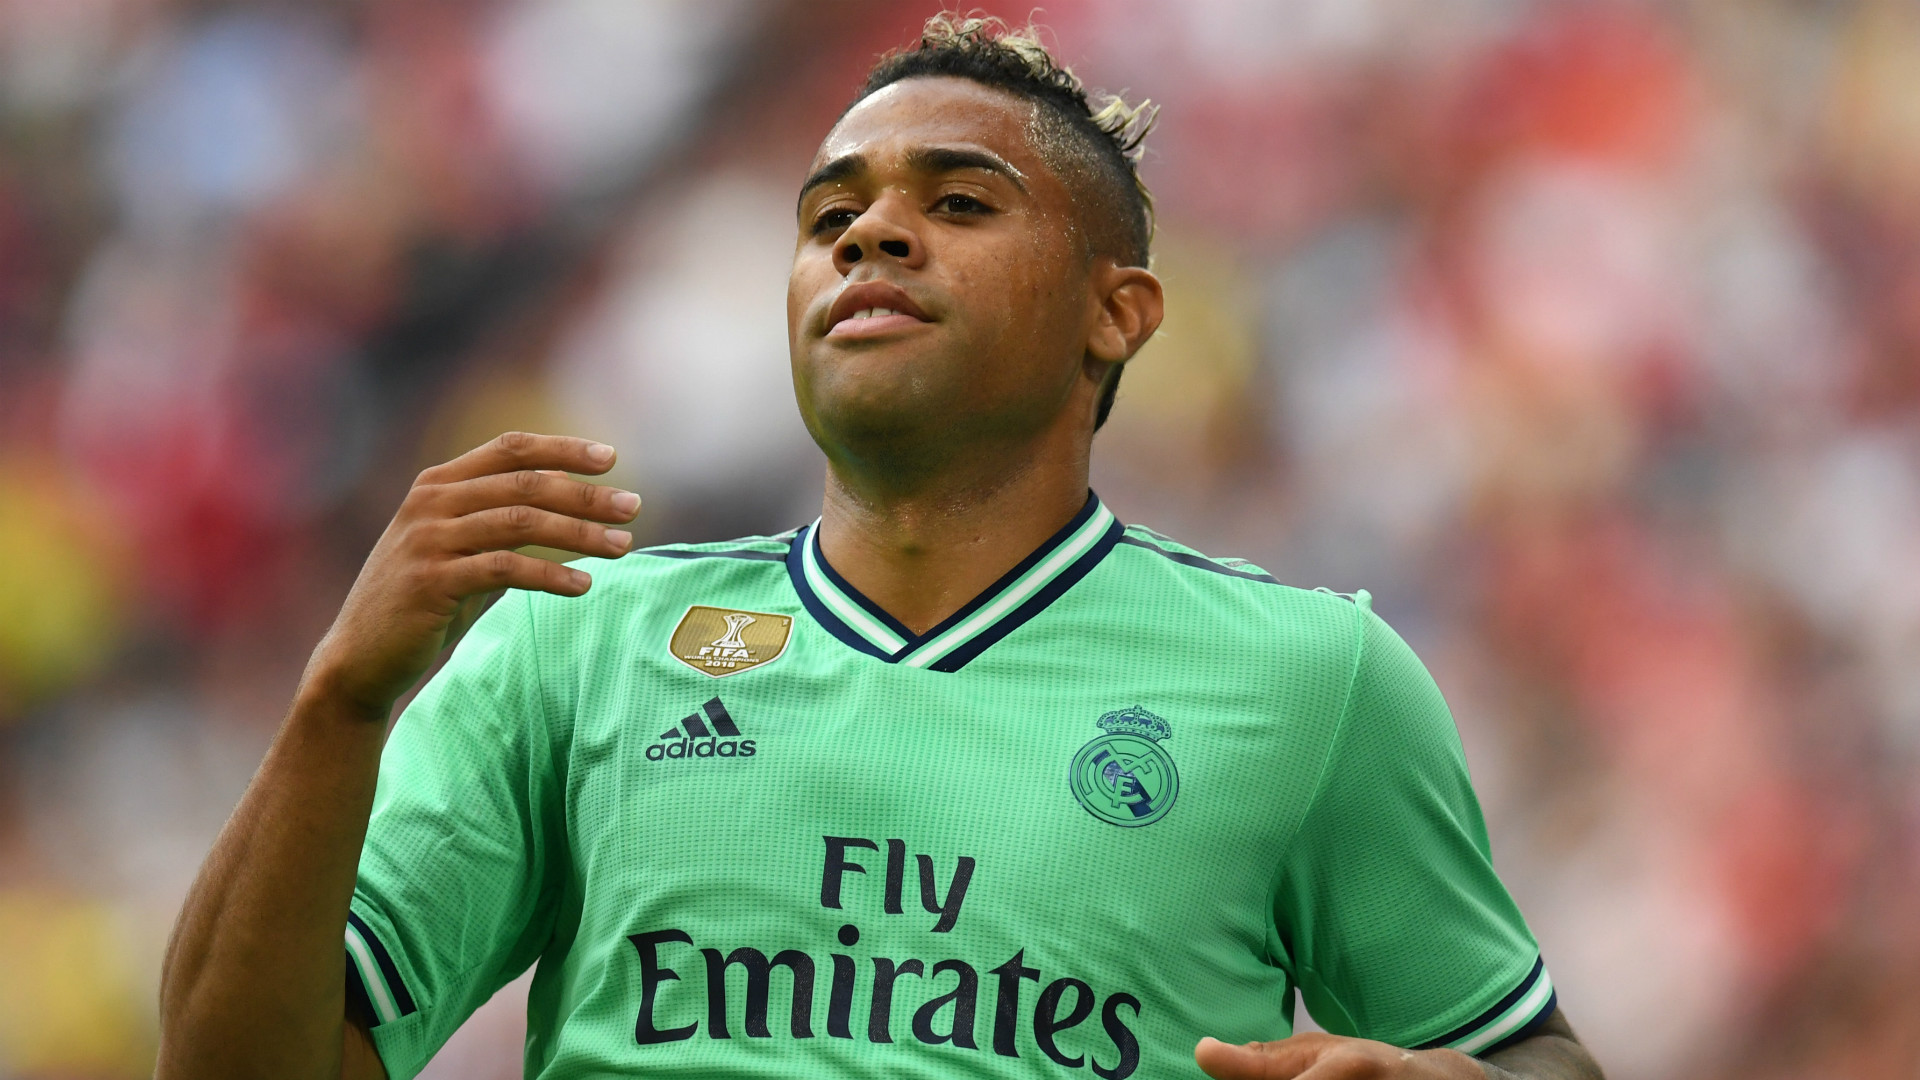 Real Madrid, un point de chute au Portugal pour Mariano Diaz